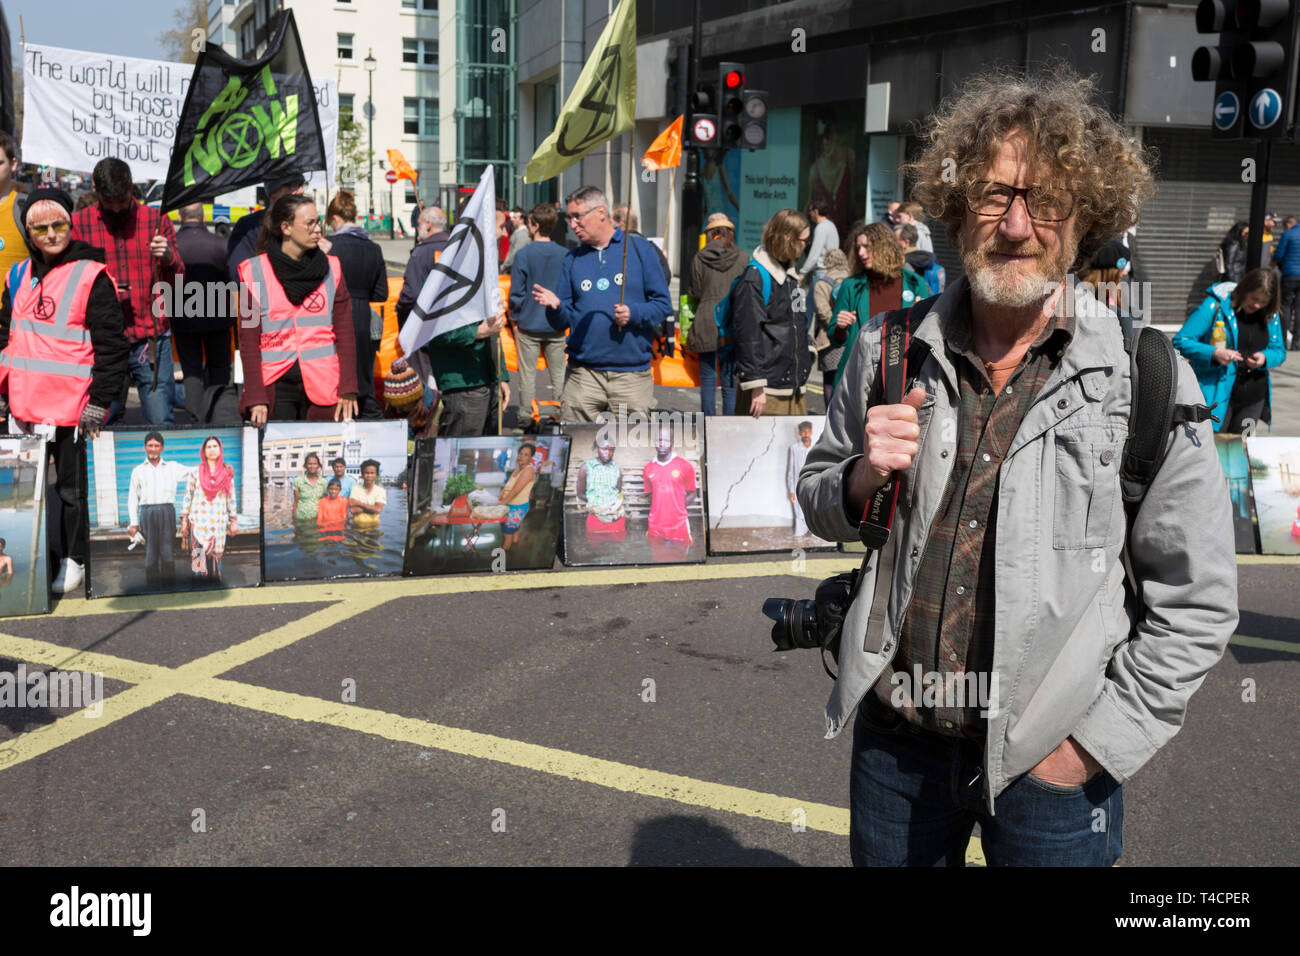 Photographer Gideon Mendel and some of his flood victim portraits 'Drowning World' during the climate Change protest with Extinction Rebellion blocking Oxford Street and simultaneously stop traffic across central London including Marble Arch, Piccadilly Circus, Waterloo Bridge and roads around Parliament Square, on 15th April 2019, in London, England. Stock Photo